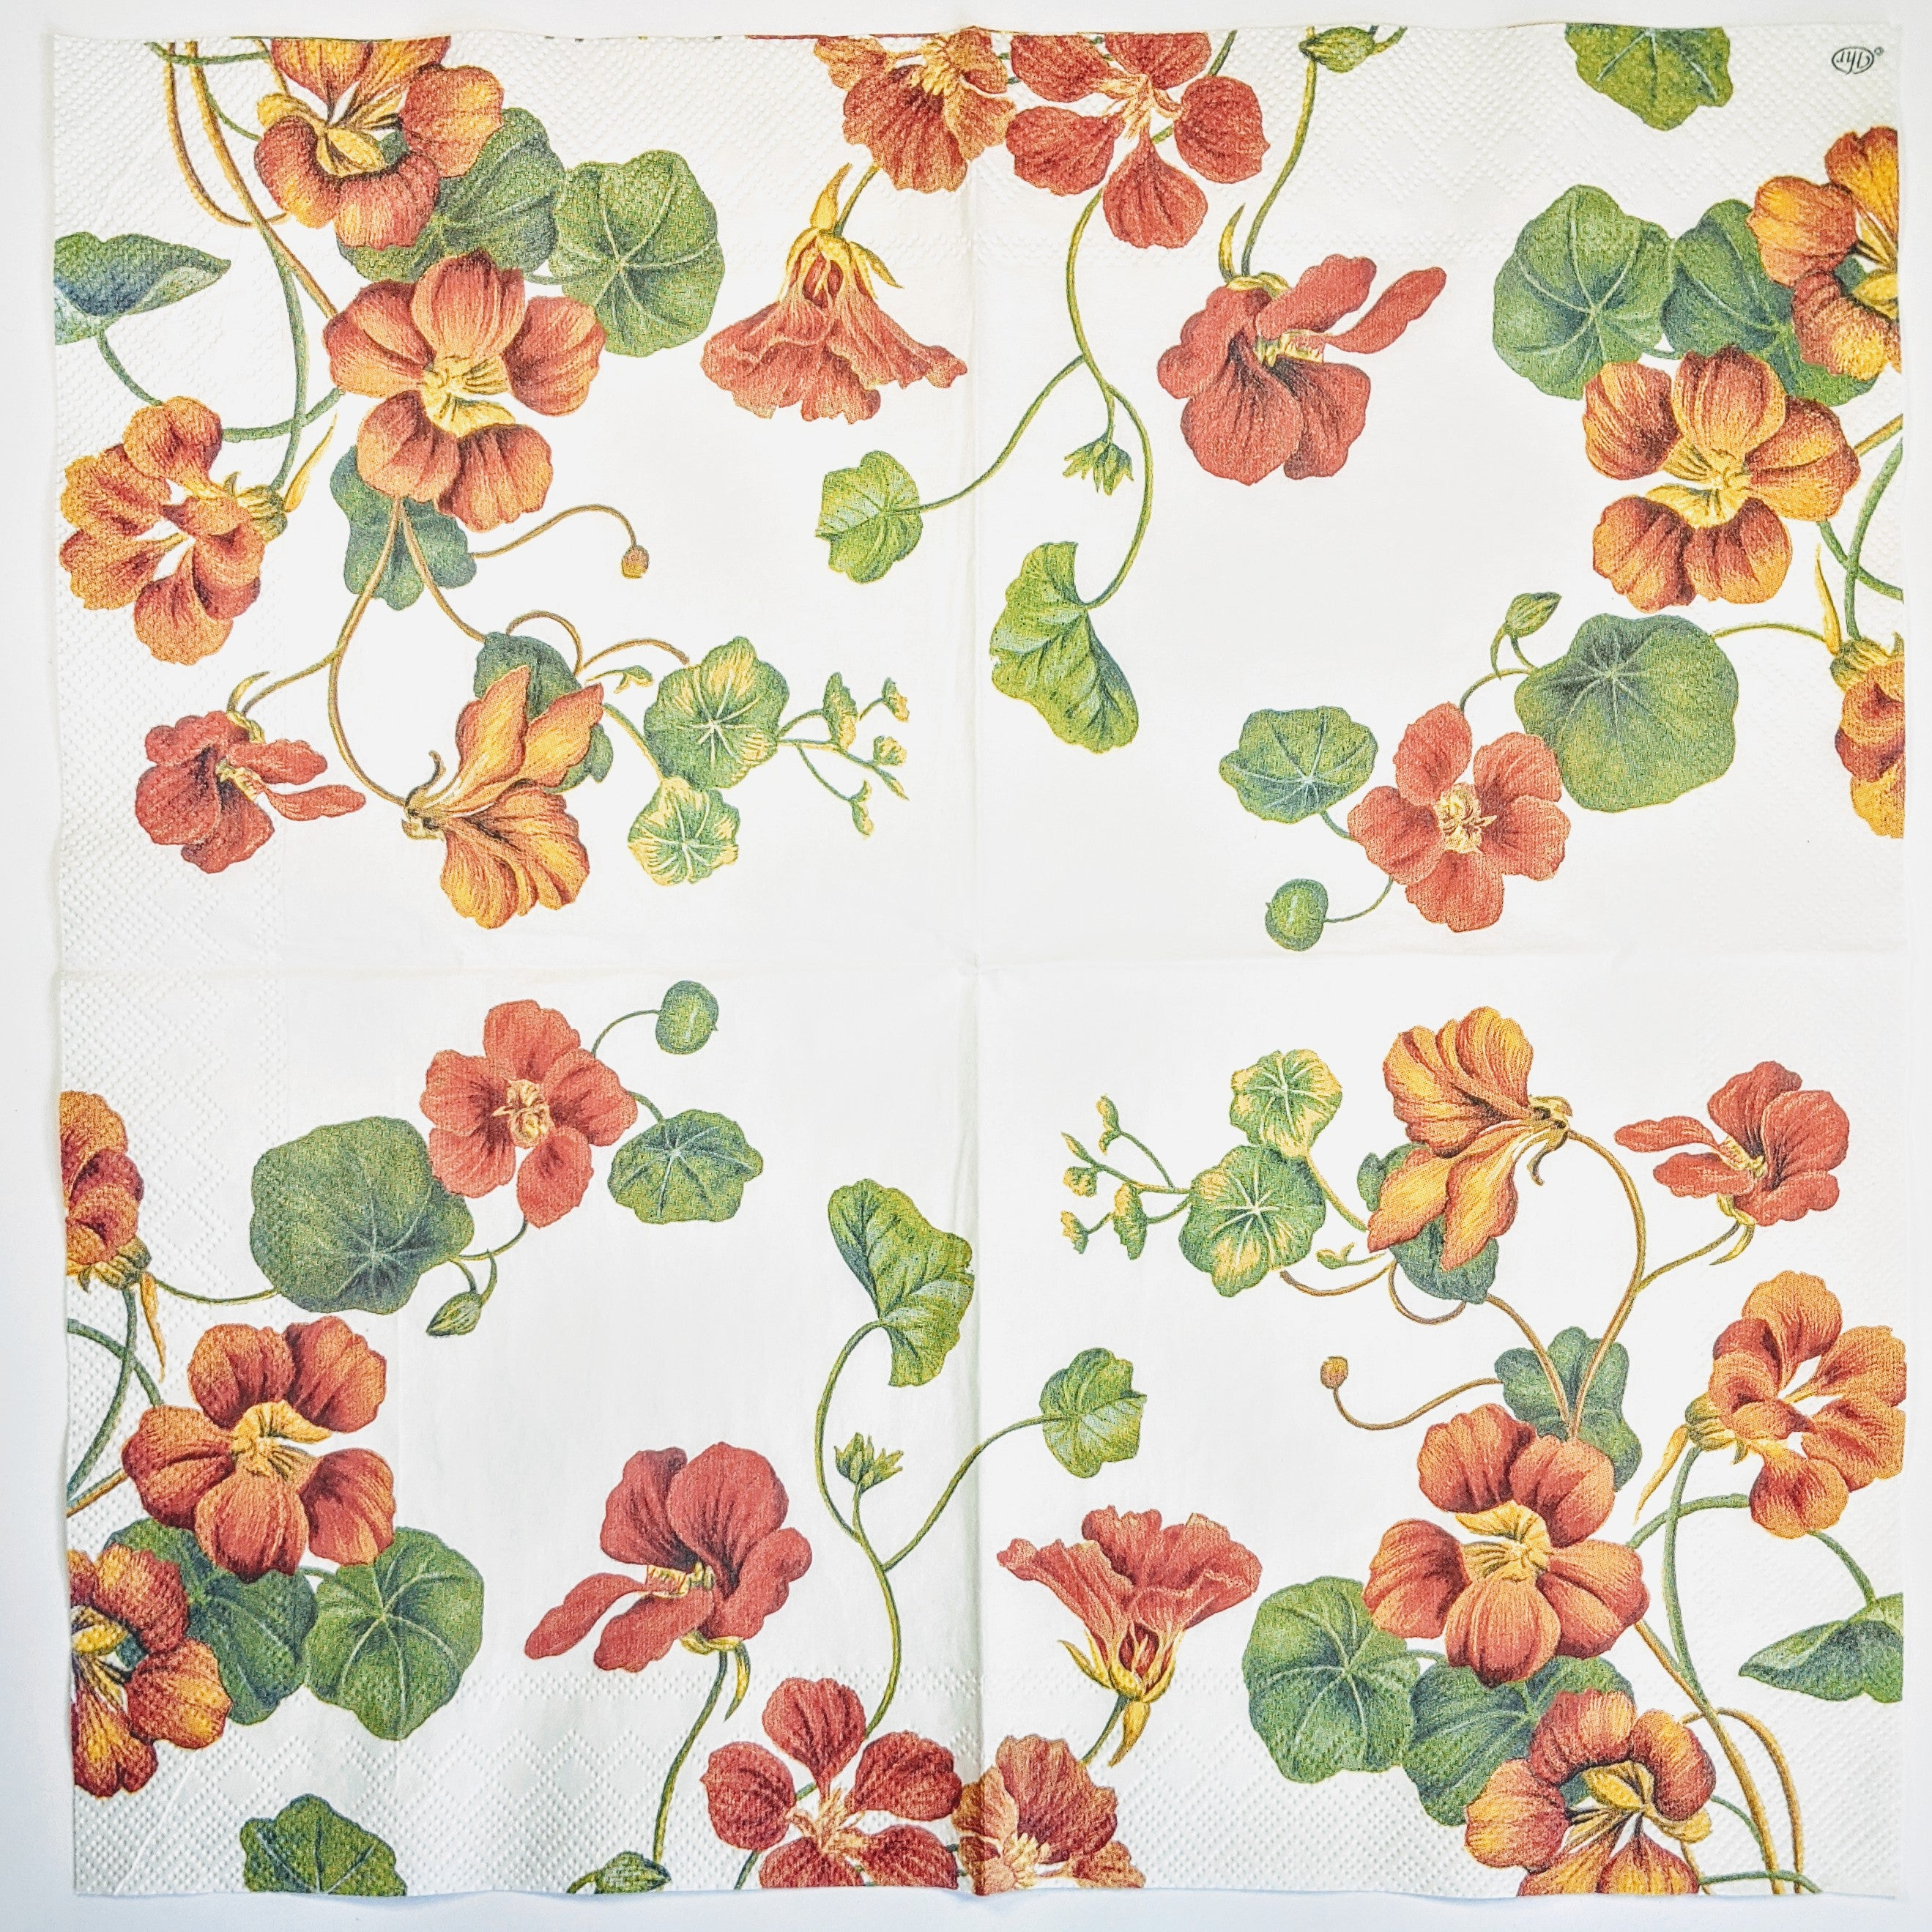 nasturtium flowers for decoupage